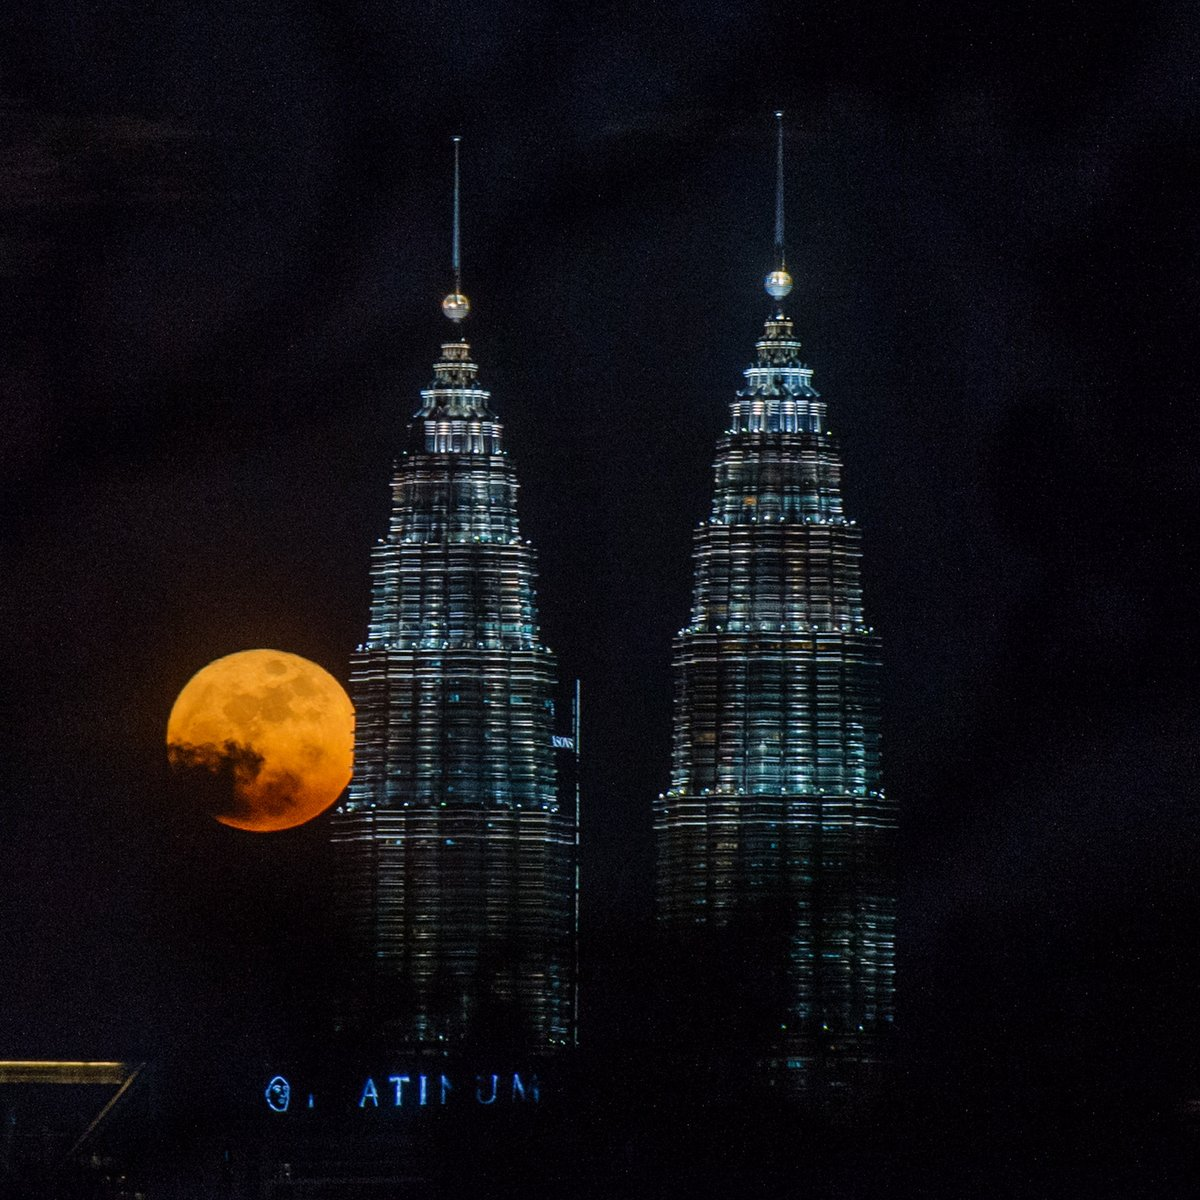 Full moon seen between Petronas Twin Towers (KLCC) during mid-autumn festival in Kuala Lumpur, September 21, 2021. On the 15th of each lunar calendar month, the moon is at its roundest and brightest, symbolizing togetherness and reunion in Chinese culture.